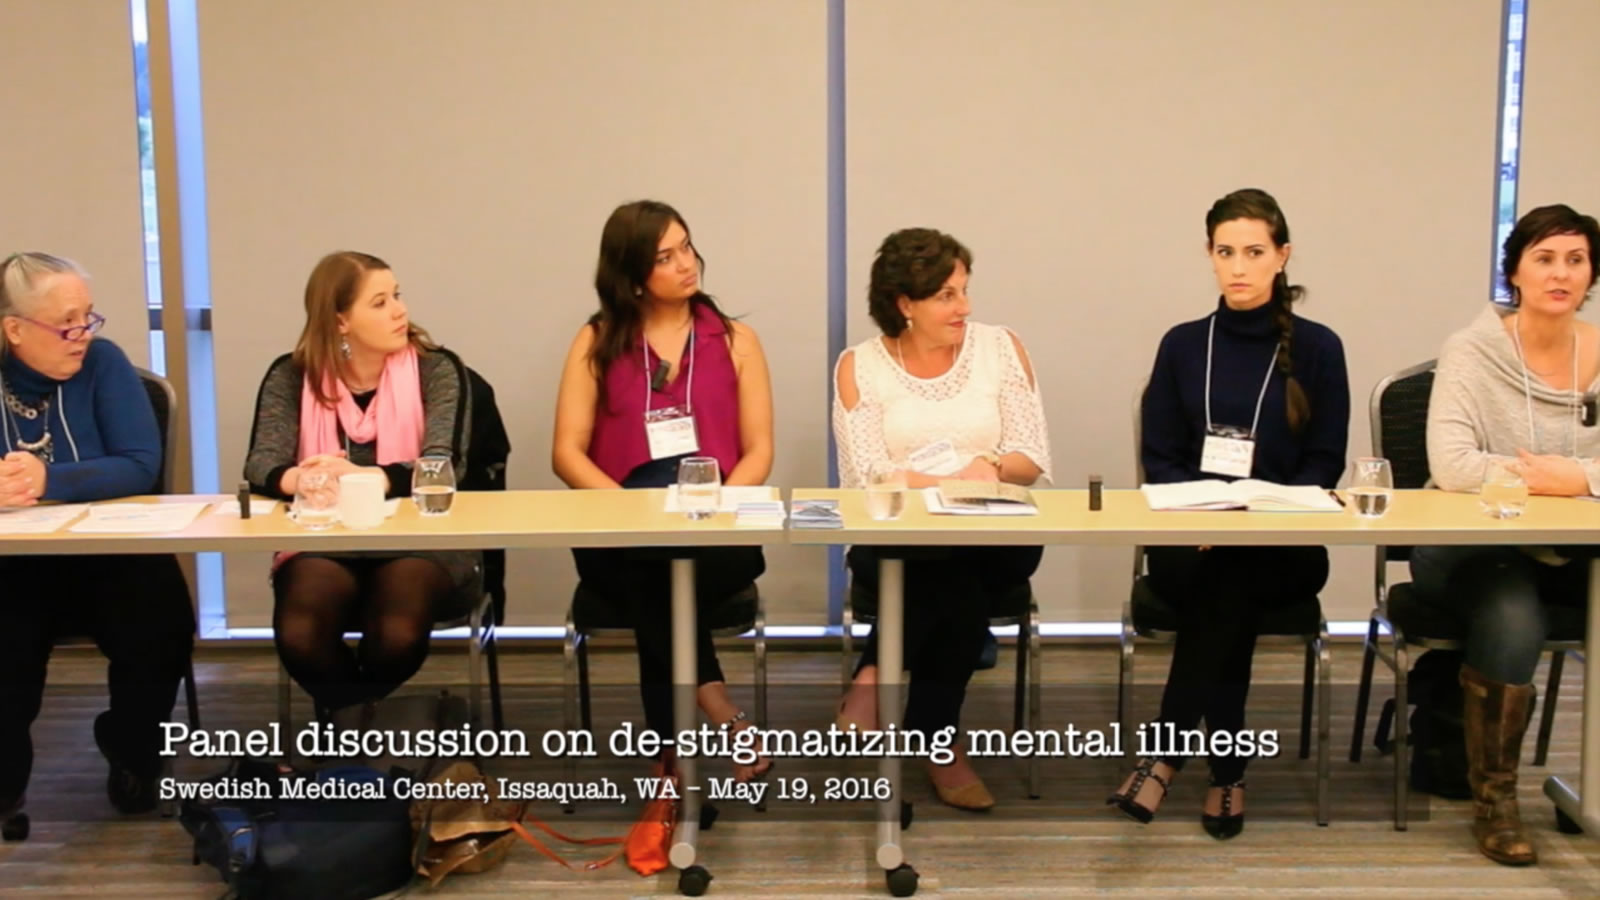 Incredible Intensity of Just Being Human - Swedish Hospital Panel Discussion on Stigma